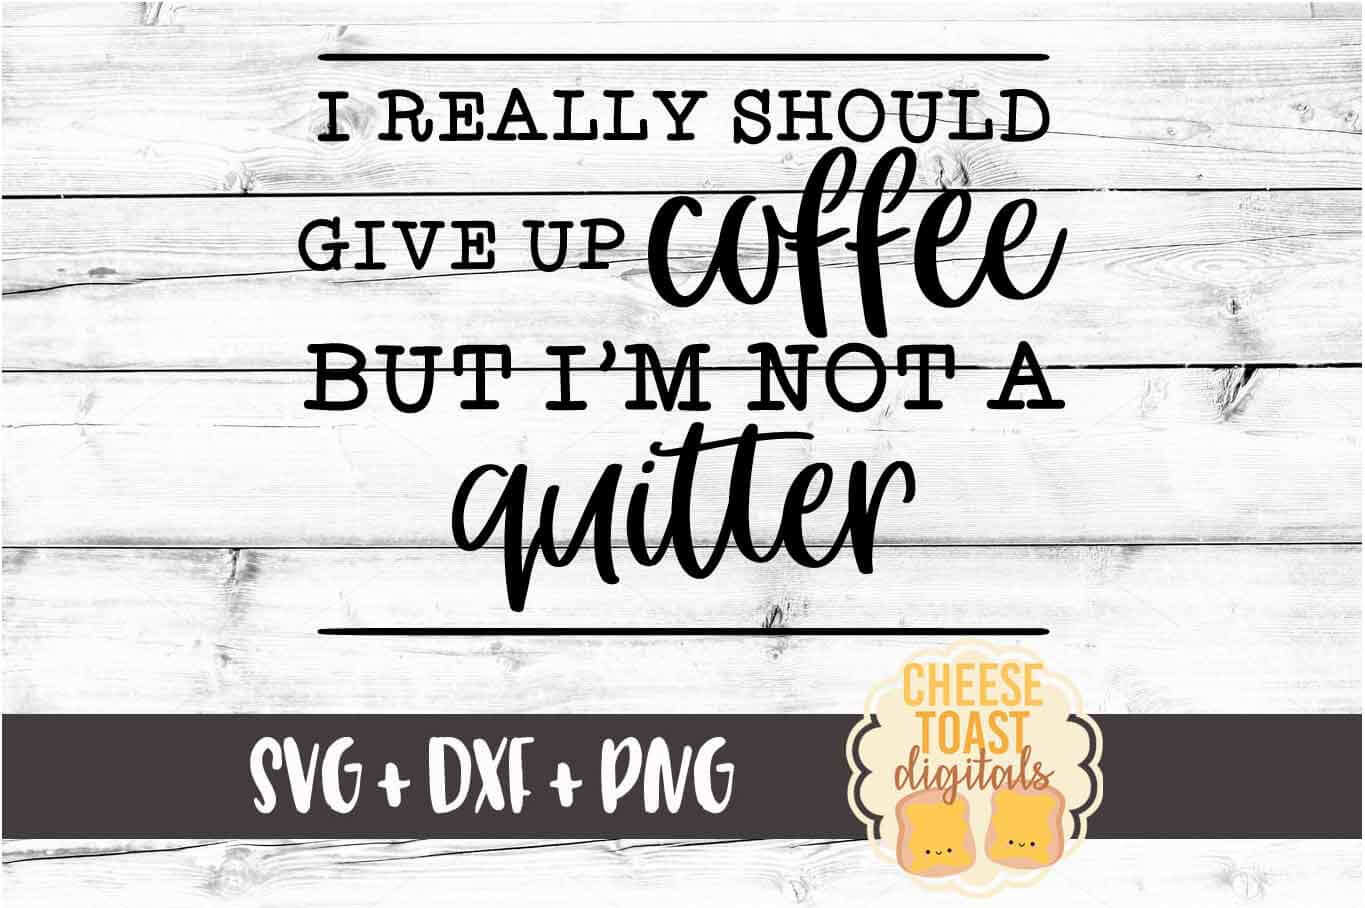 I Really Should Give Up Coffee But I'm Not A Quitter SVG example image 2